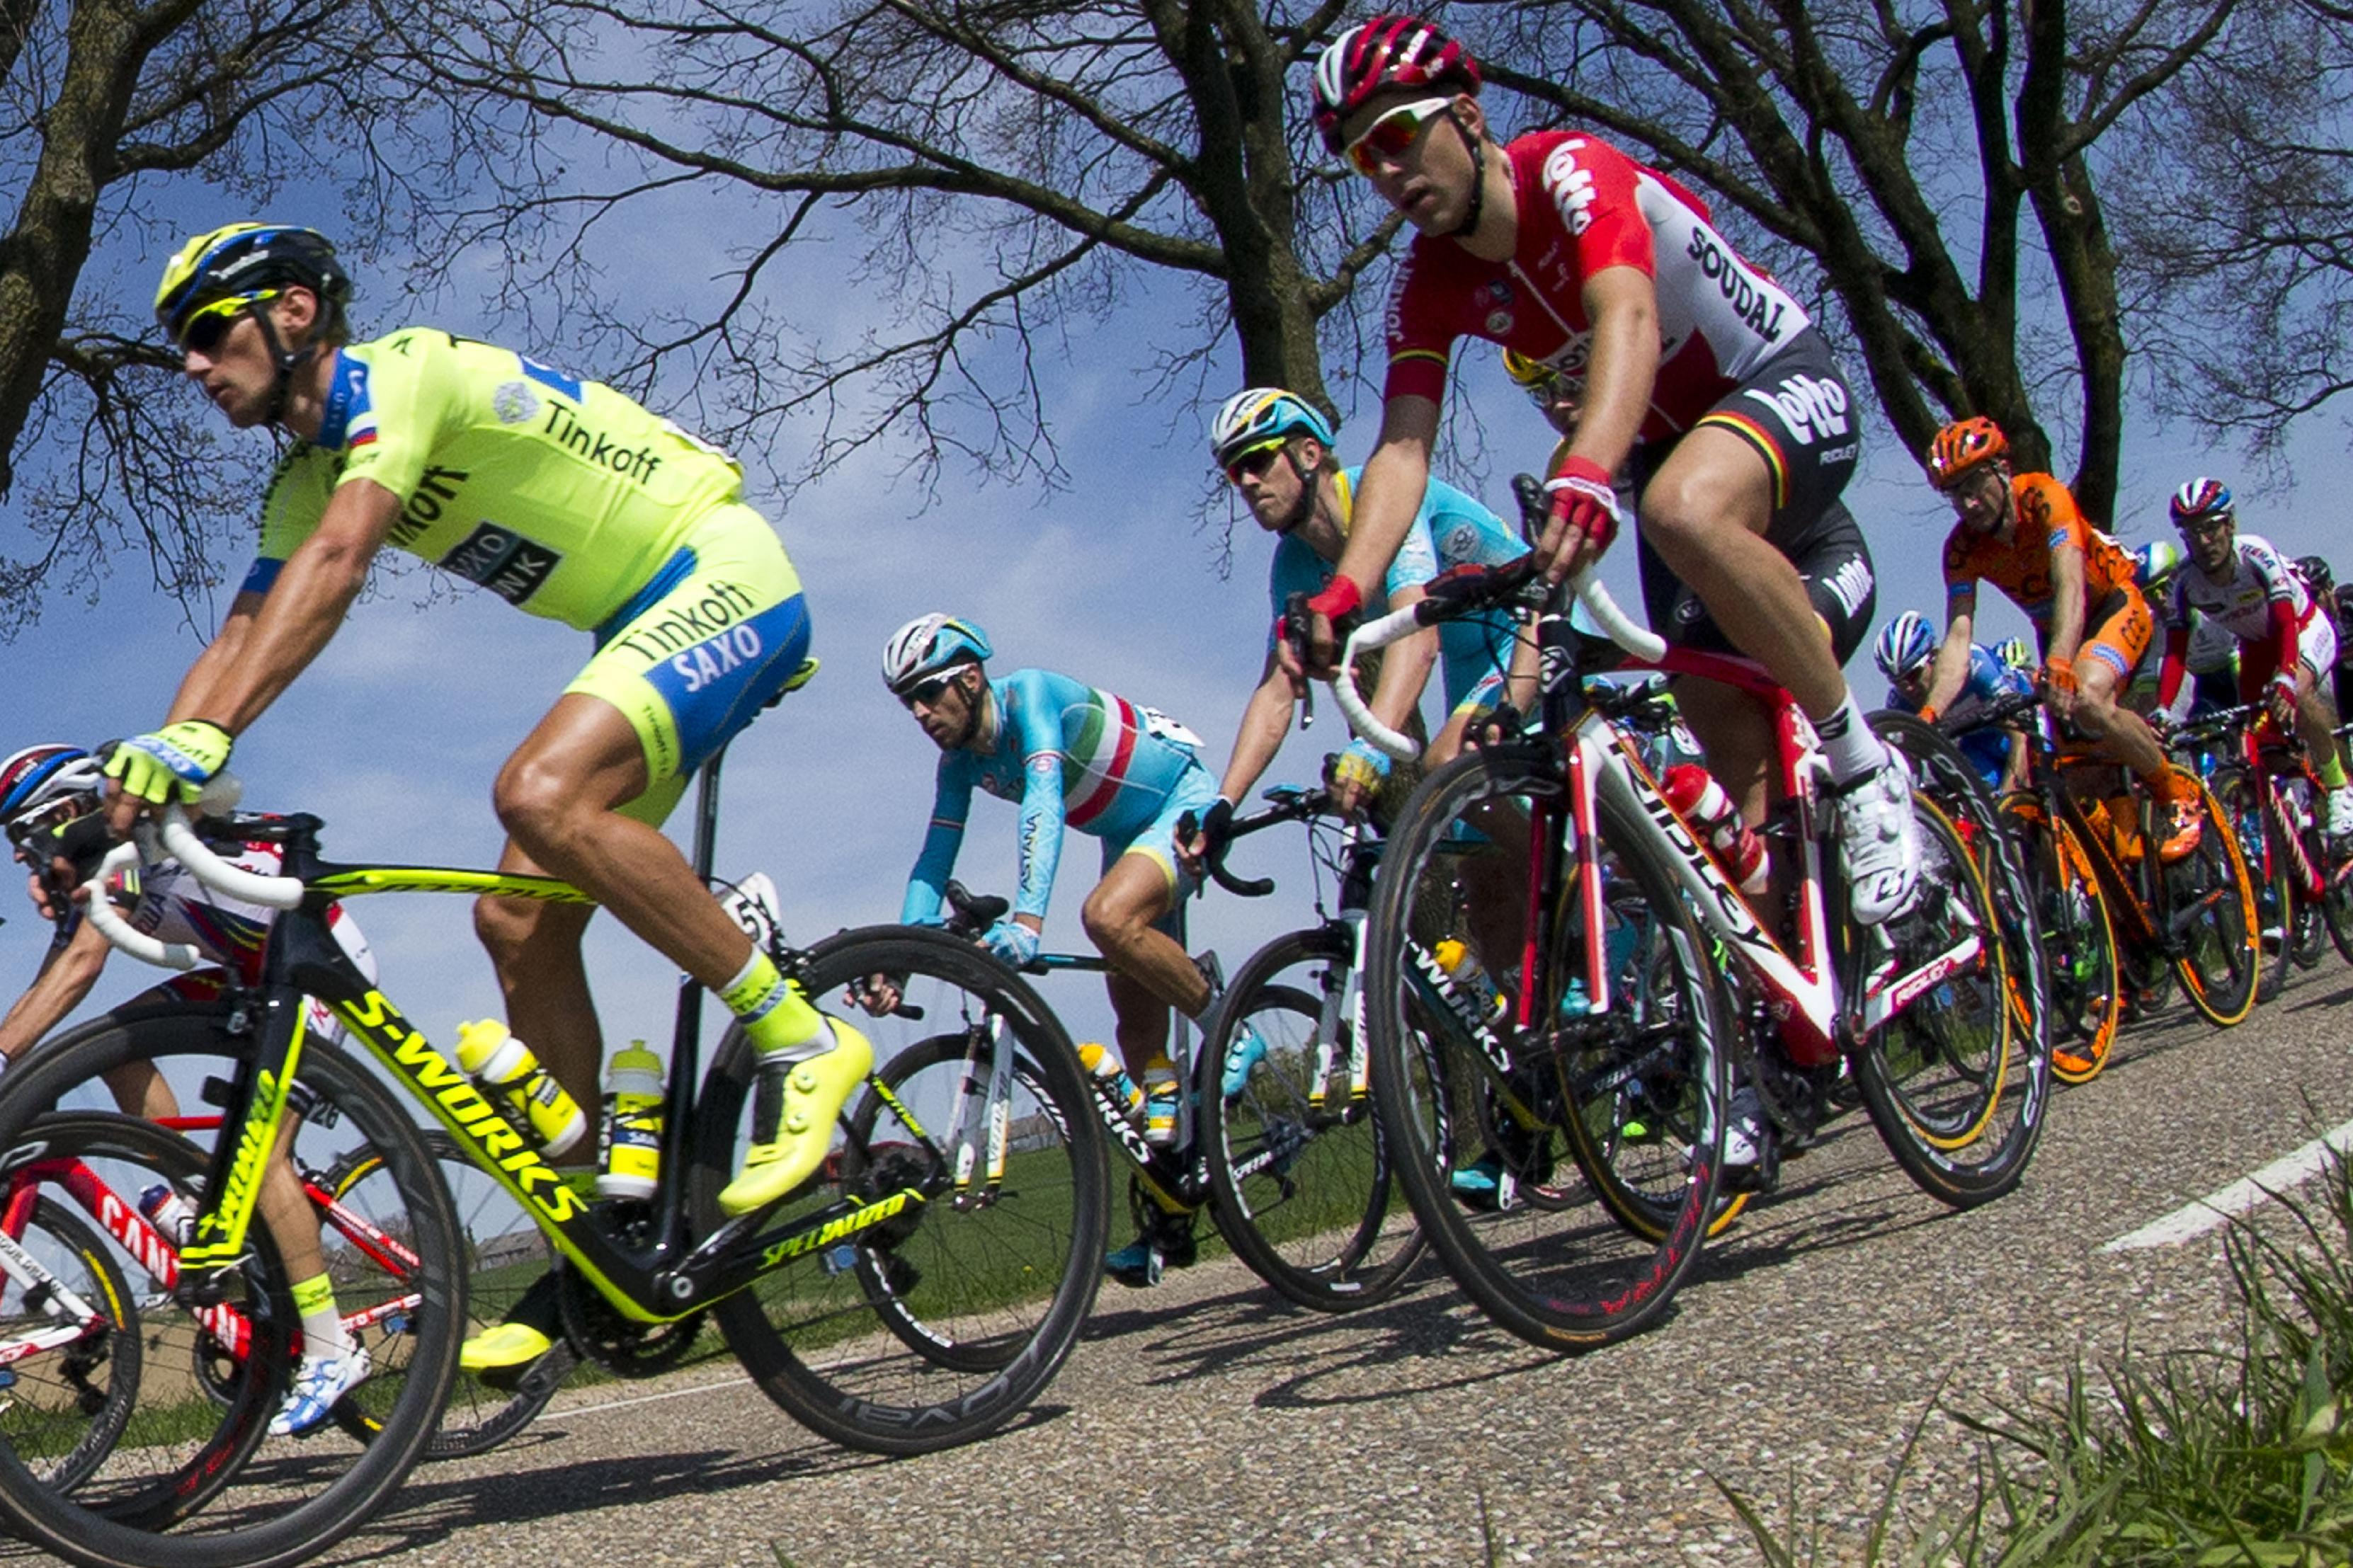 Astana cycling team keeps top-tier status after doping cases